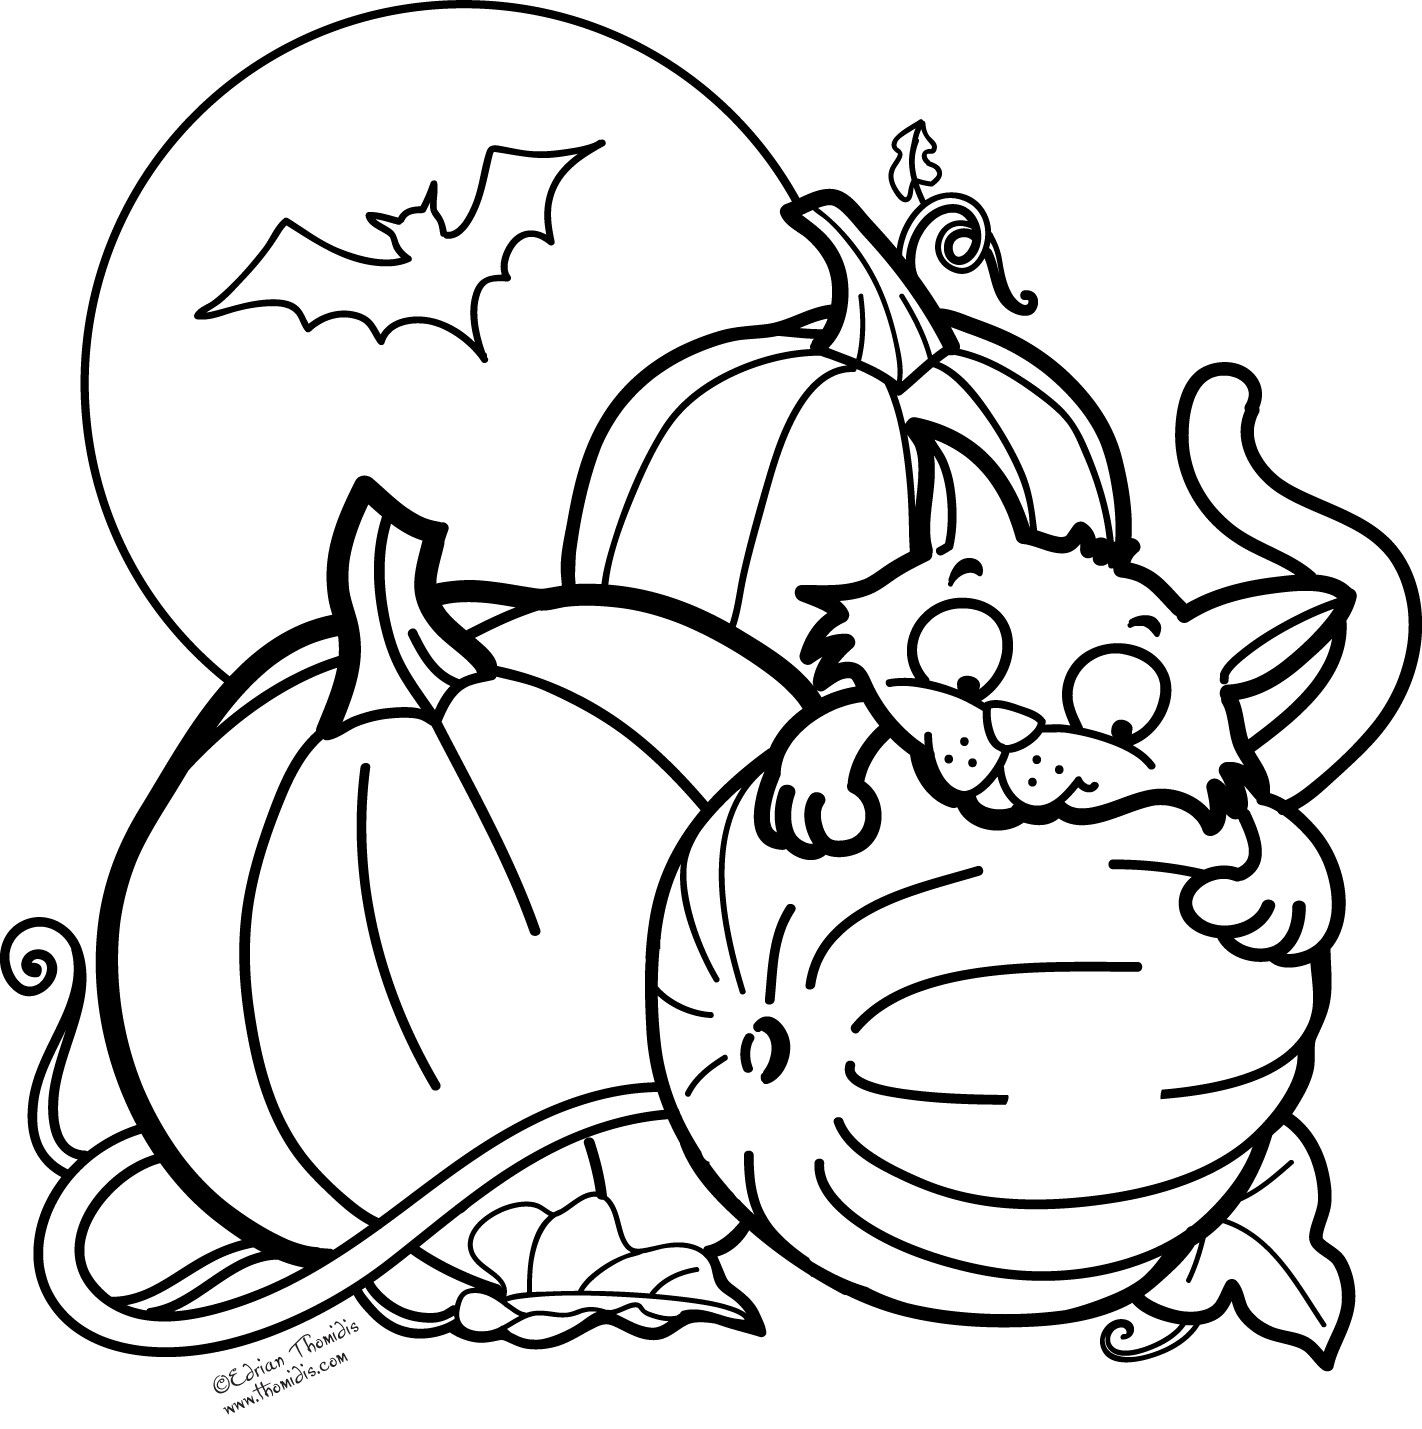 Pin By Coloring Book Zone On Colouring Halloween Autumn Halloween Coloring Pages Halloween Coloring Pages Printable Free Halloween Coloring Pages